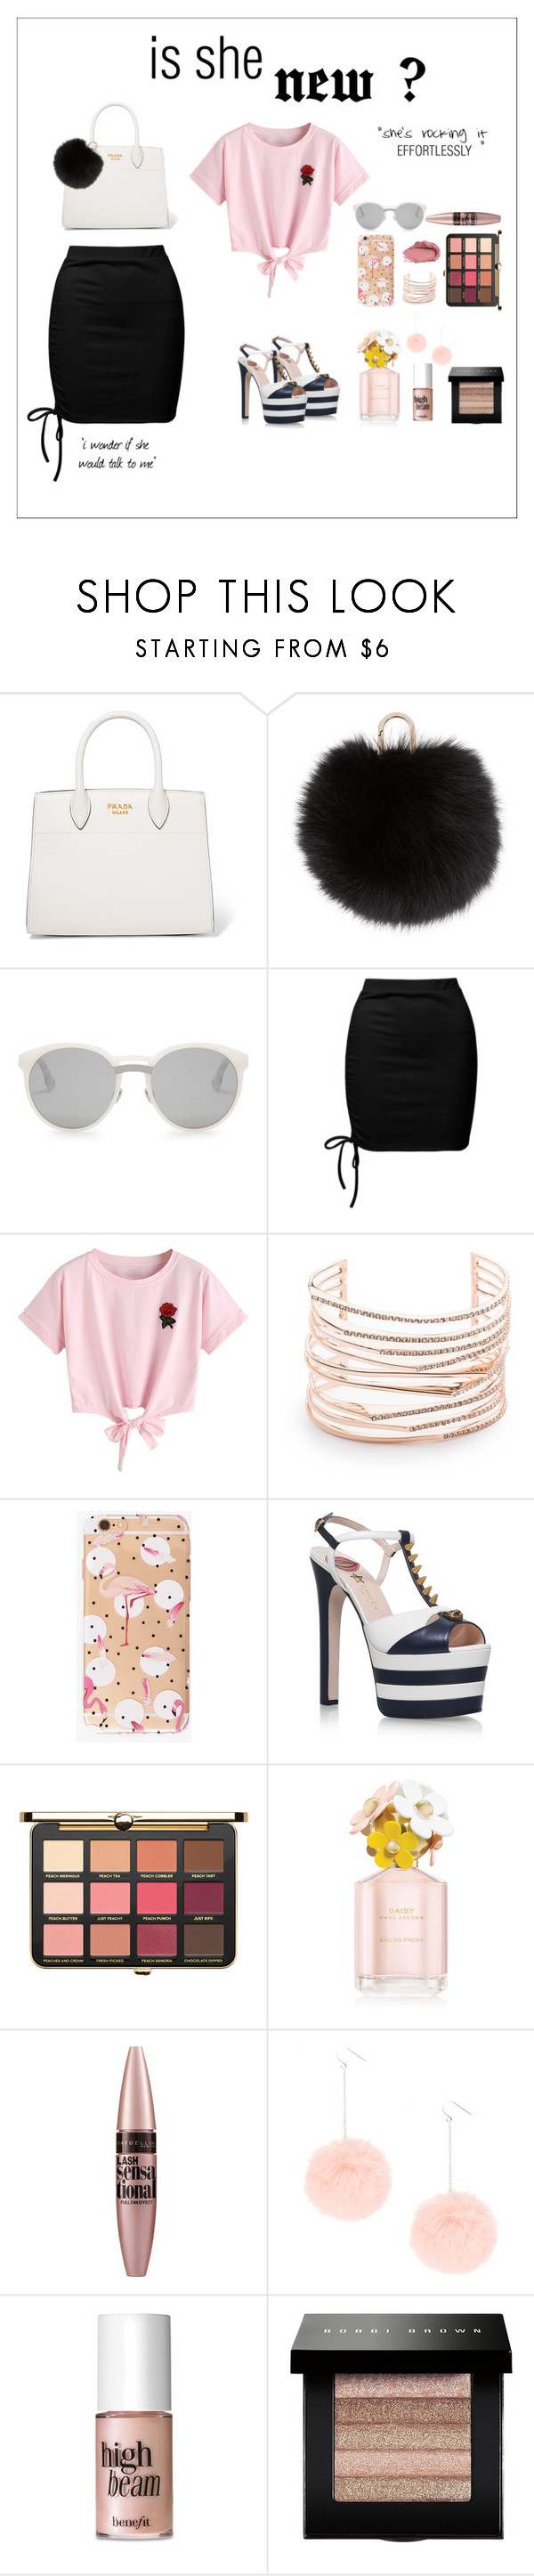 """""""Walkway"""" by puterisarahx ❤ liked on Polyvore featuring Prada, Yves Salomon, Christian Dior, Sans Souci, Urban Decay, WithChic, Alexis Bittar, Gucci, Just Peachy and Marc Jacobs"""